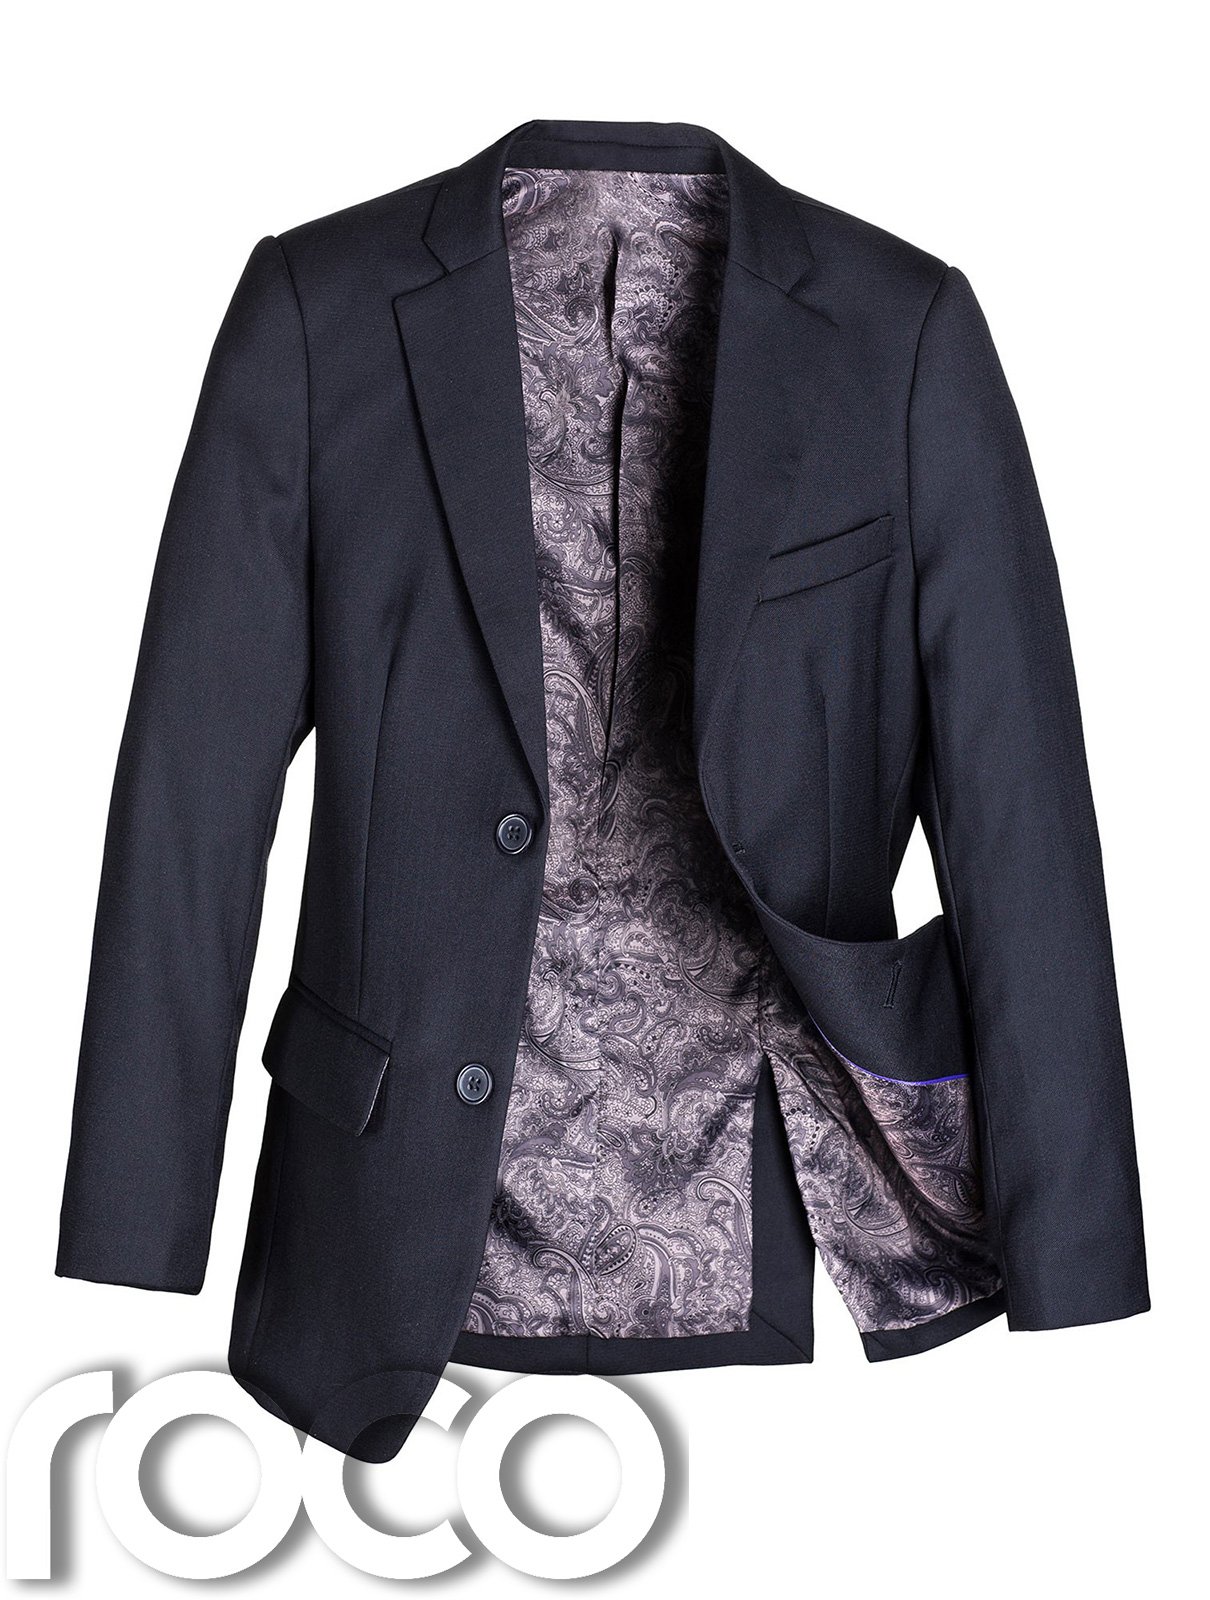 A blazer isn't all that far off from being a navy suit jacket, which is what allows it to be worn in dressier settings. Like a navy suit, the navy blazer is great both during the day and in the evening.